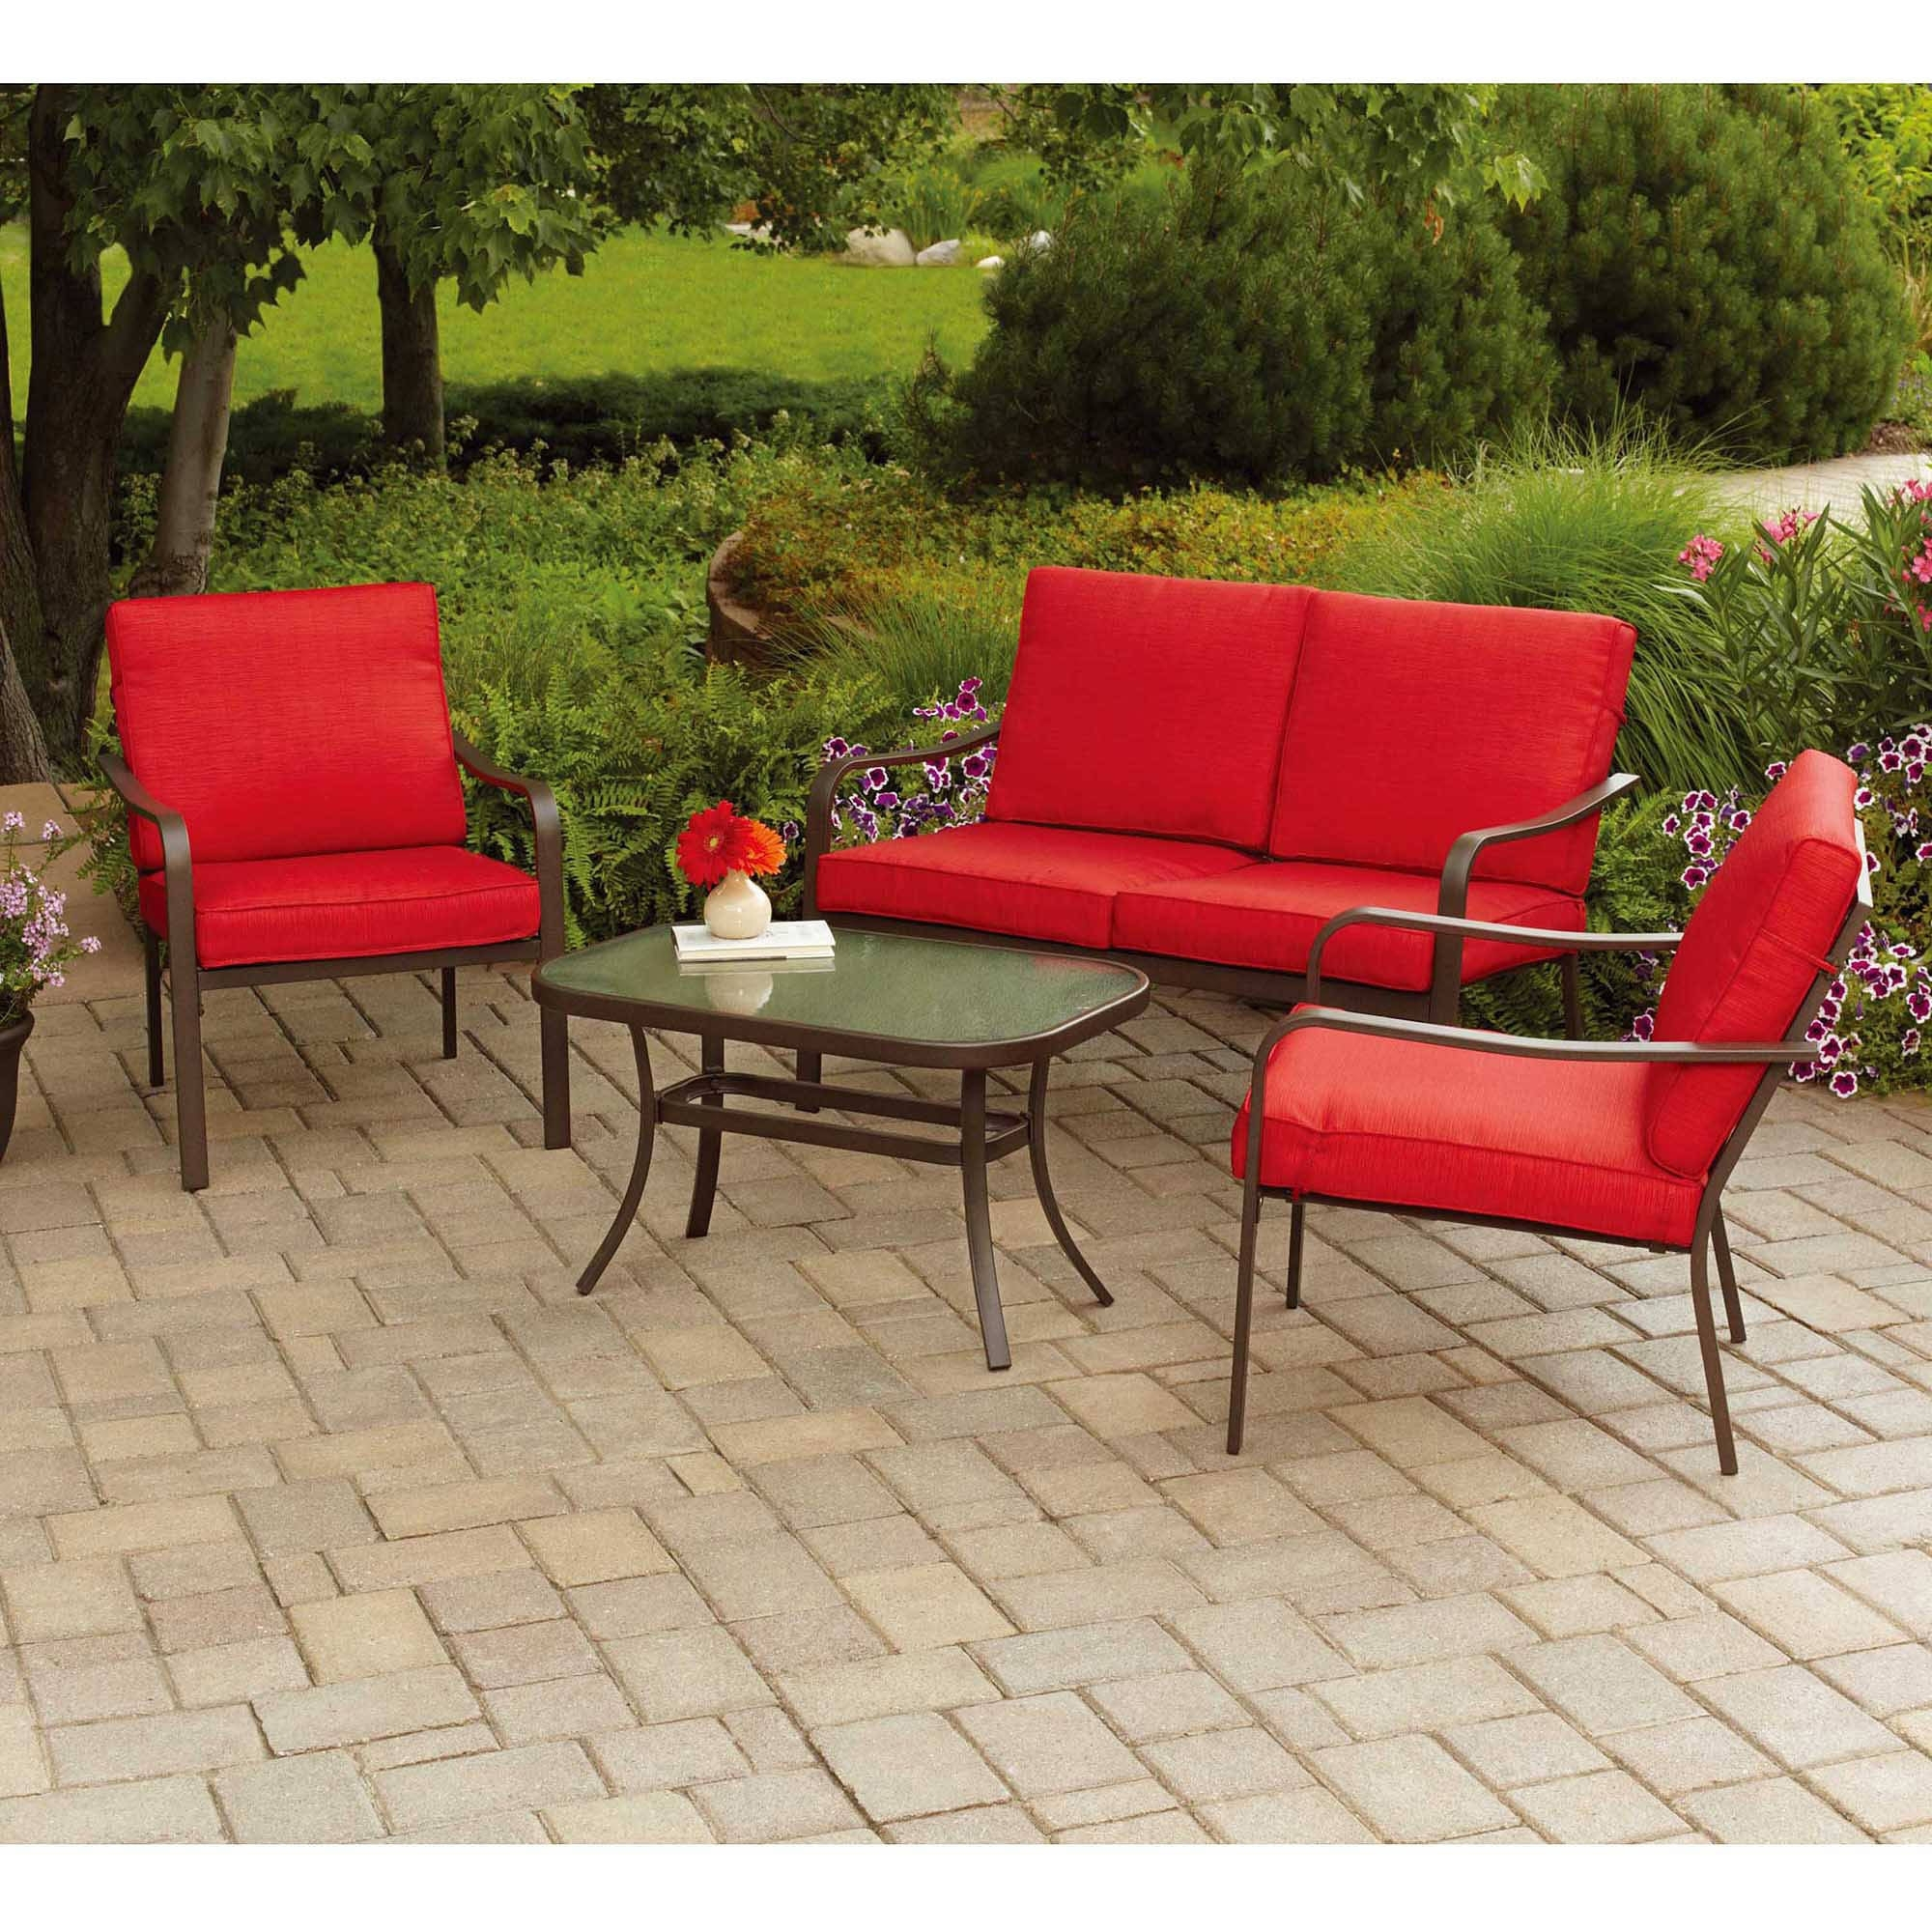 Patio Conversation Sets With Sunbrella Cushions For Popular Mainstays Stanton Cushioned 4 Piece Patio Conversation Set, Seats  (View 9 of 20)